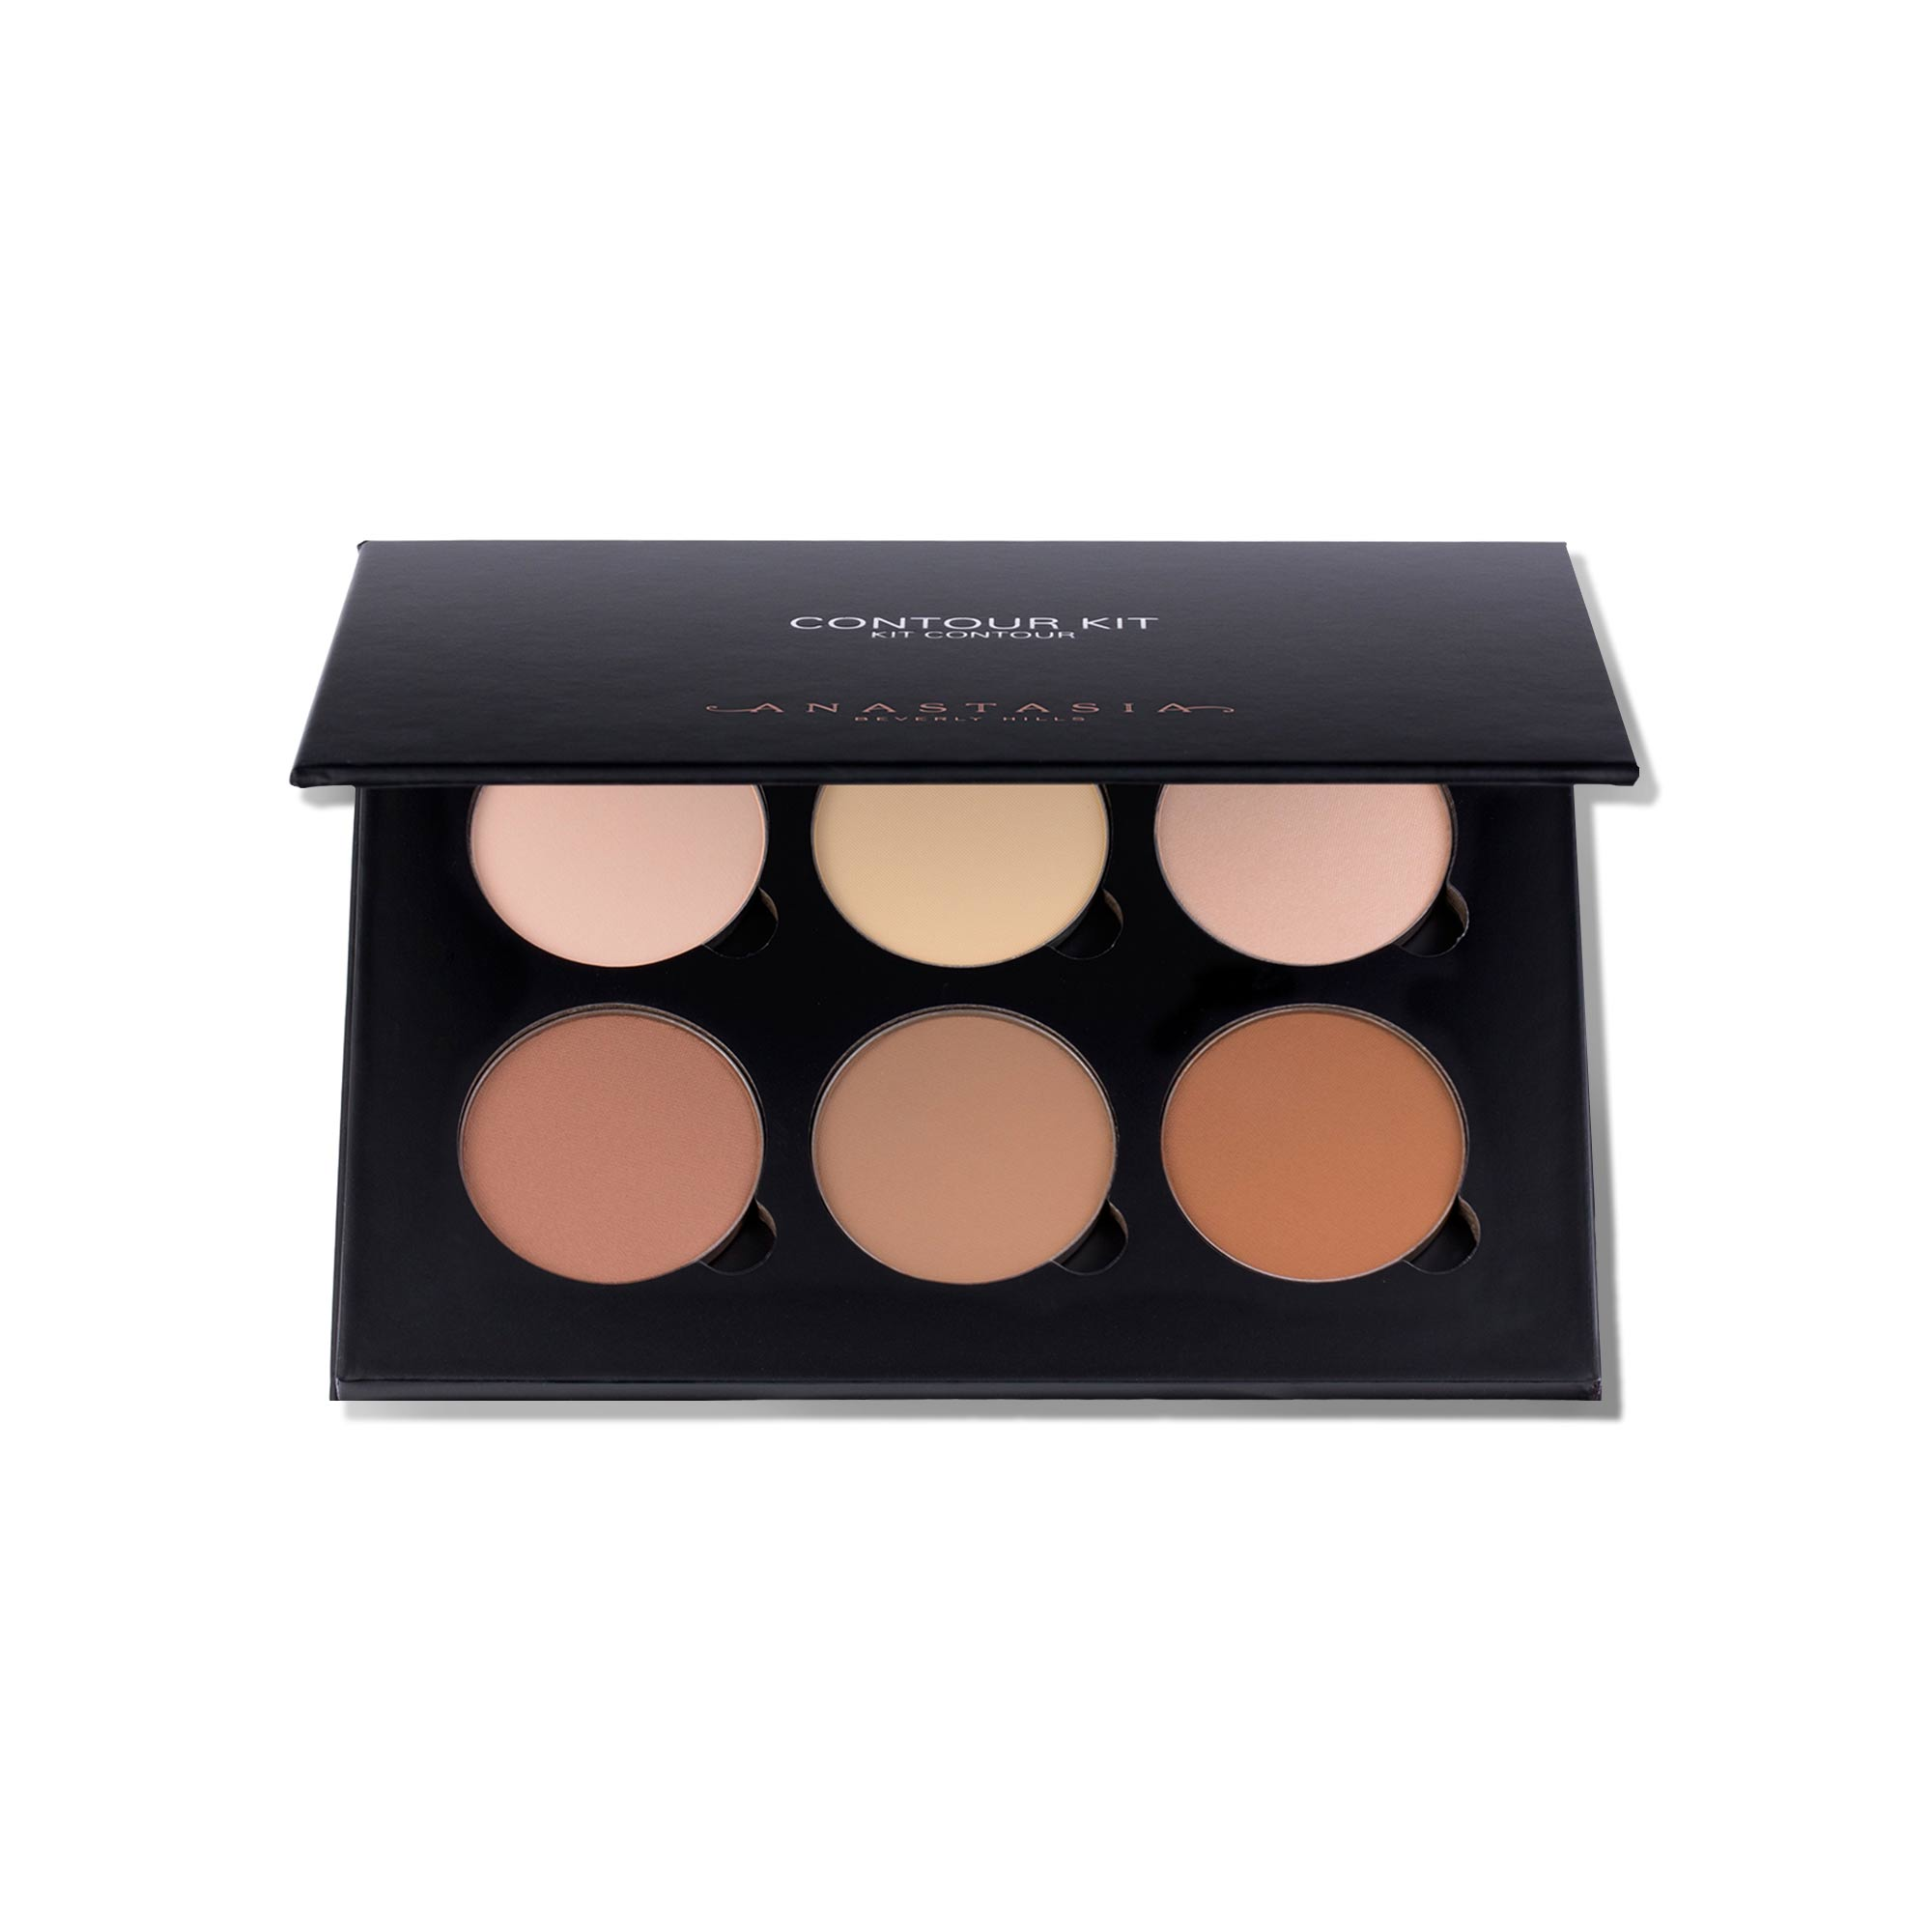 Powder Contour Kit - Light to Medium